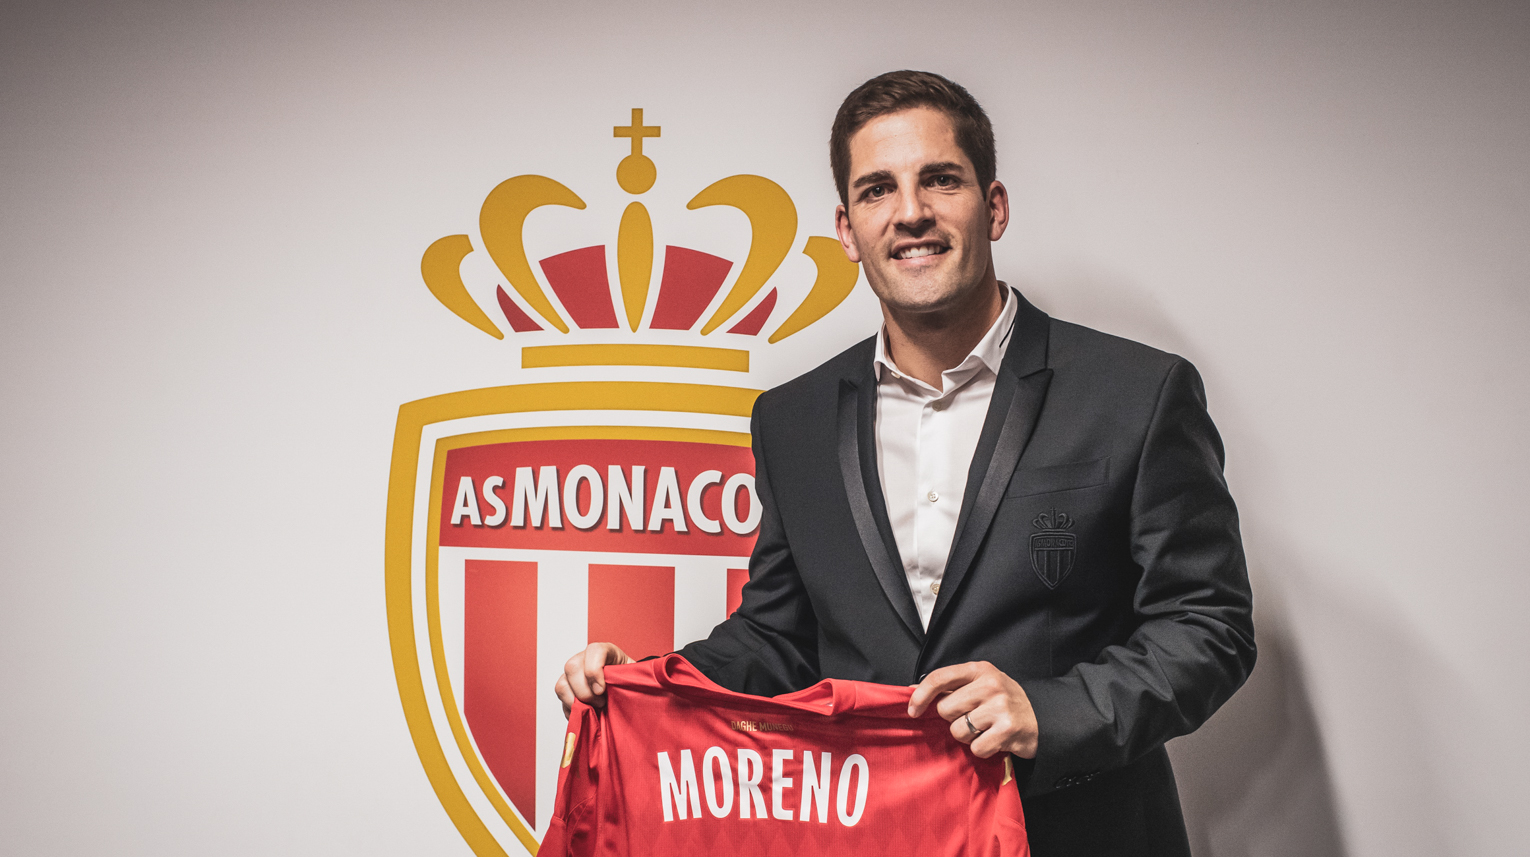 Robert Moreno Allow The Fans Be Proud Of Their Team As Monaco